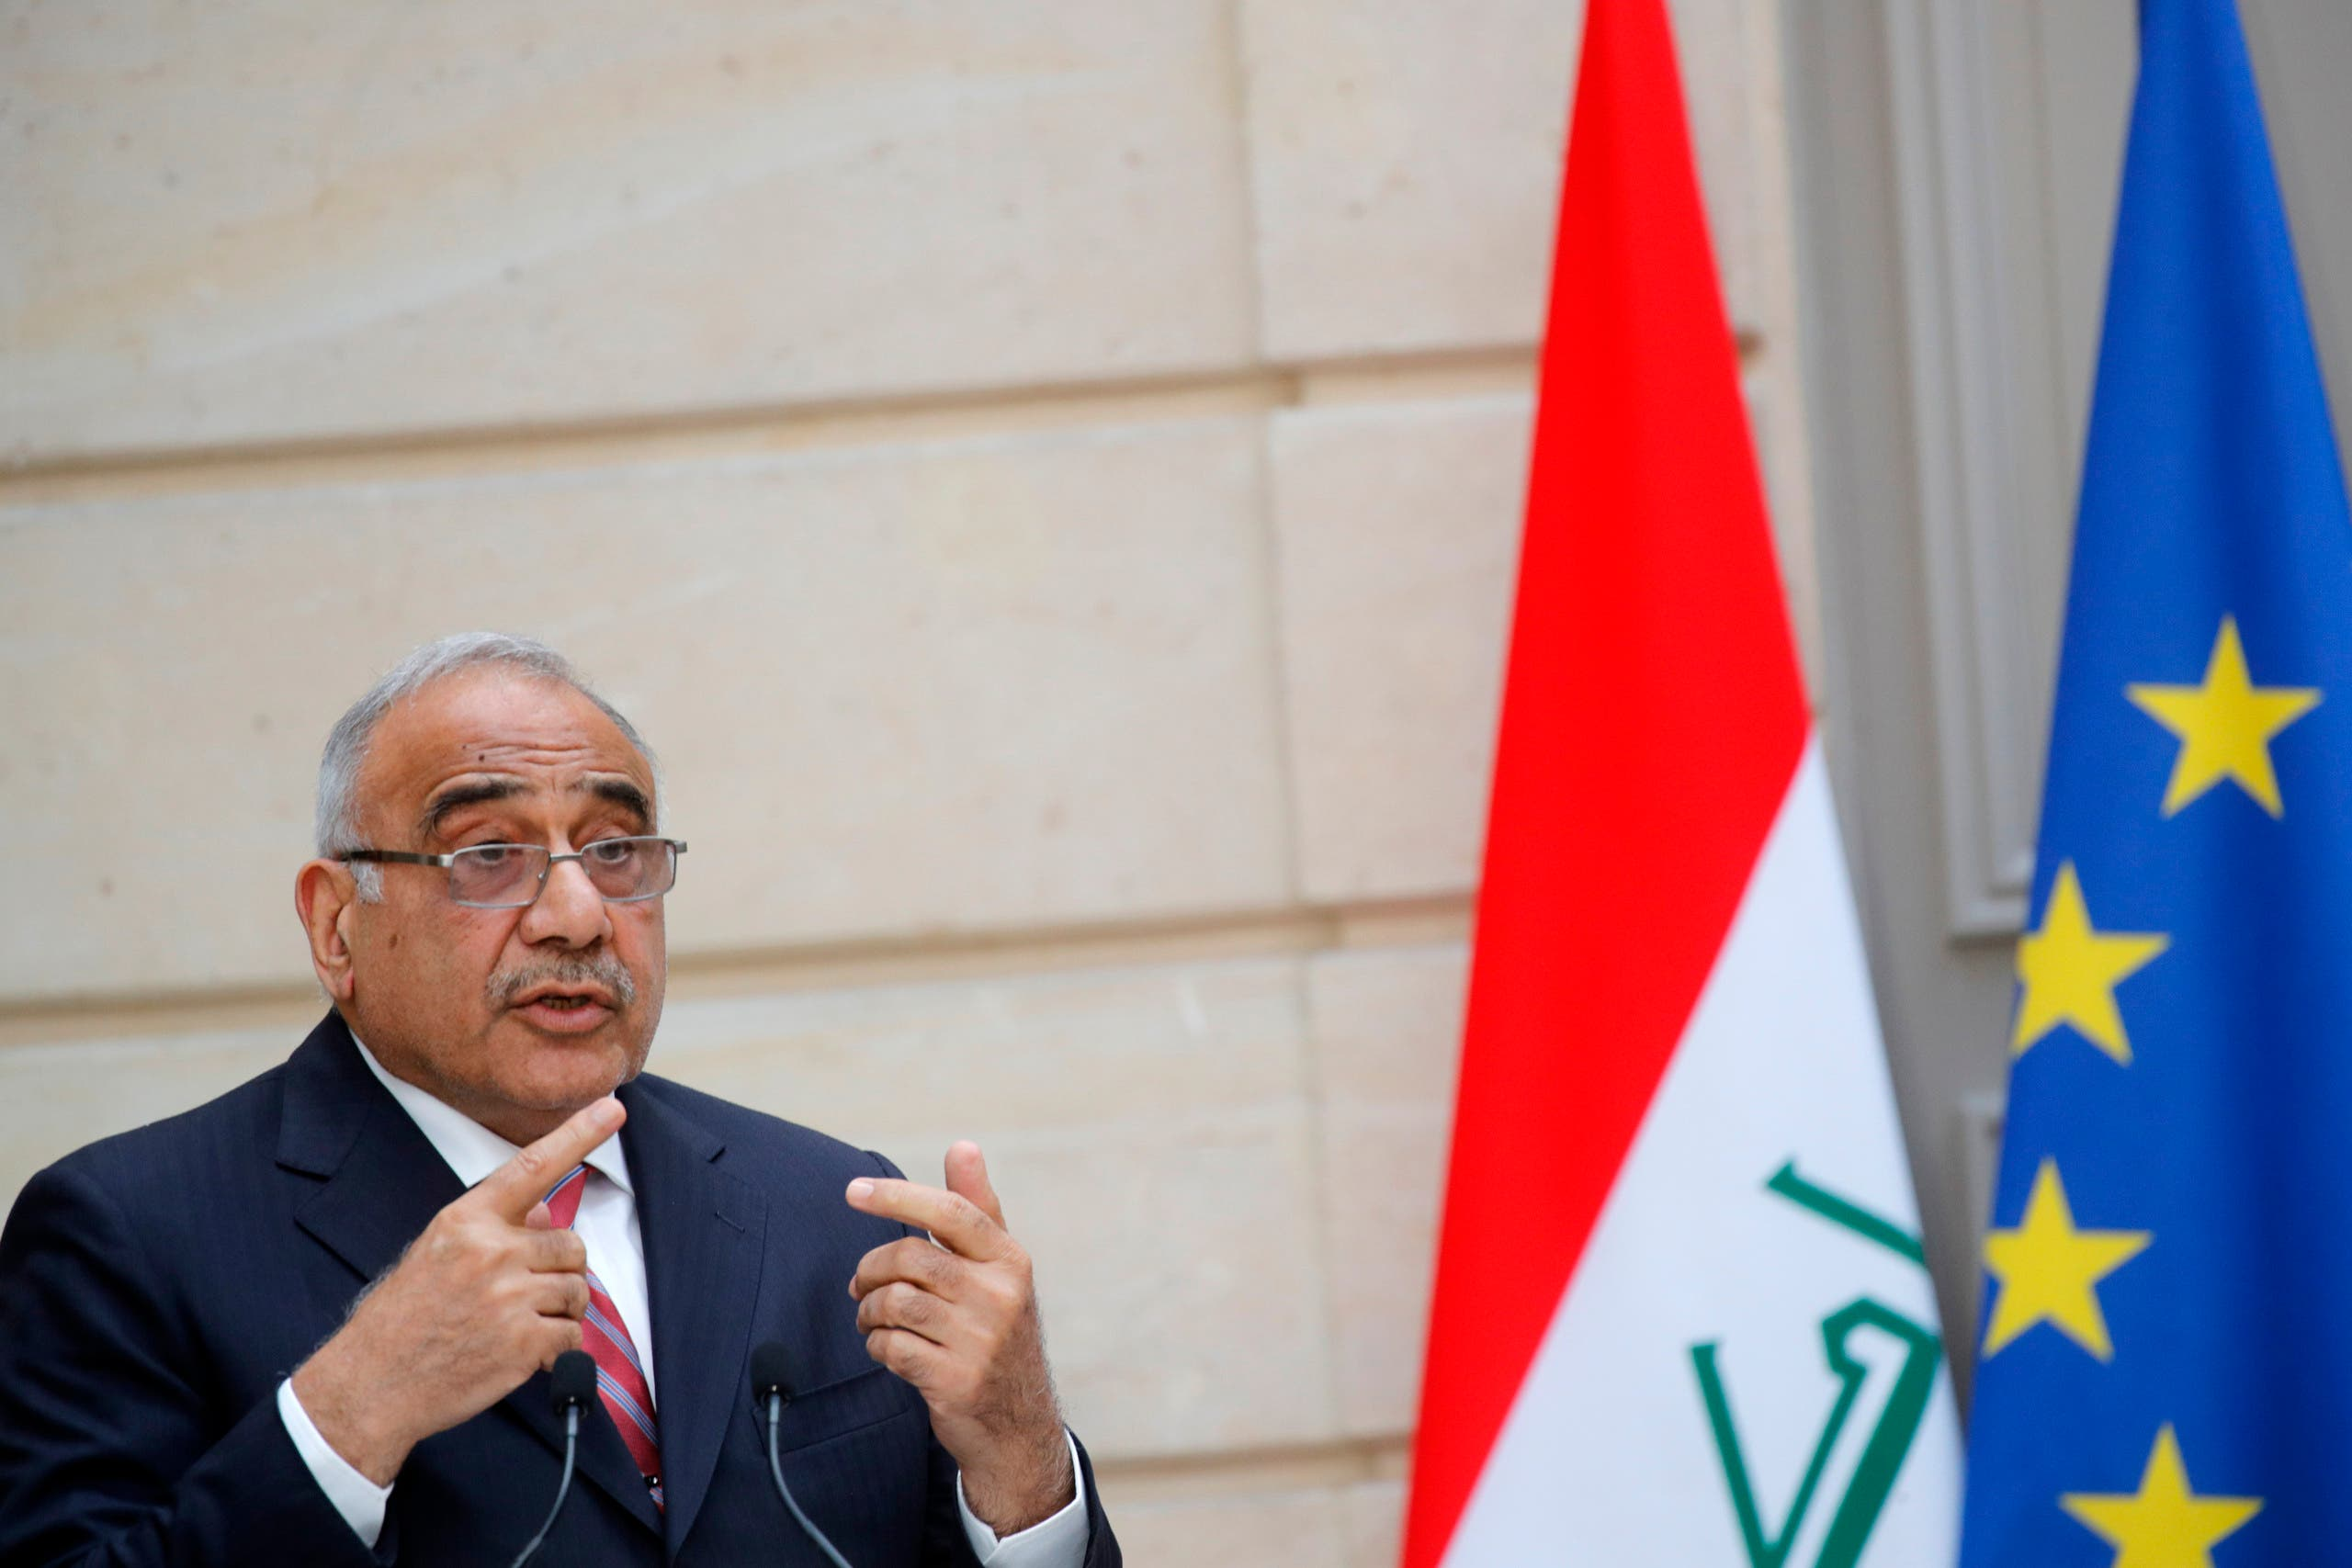 Then-Iraqi Prime Minister Adel Abdul Mahdi speaks during a joint statement with French President at the Elysee Palace in Paris, on May 3, 2019. (AFP)